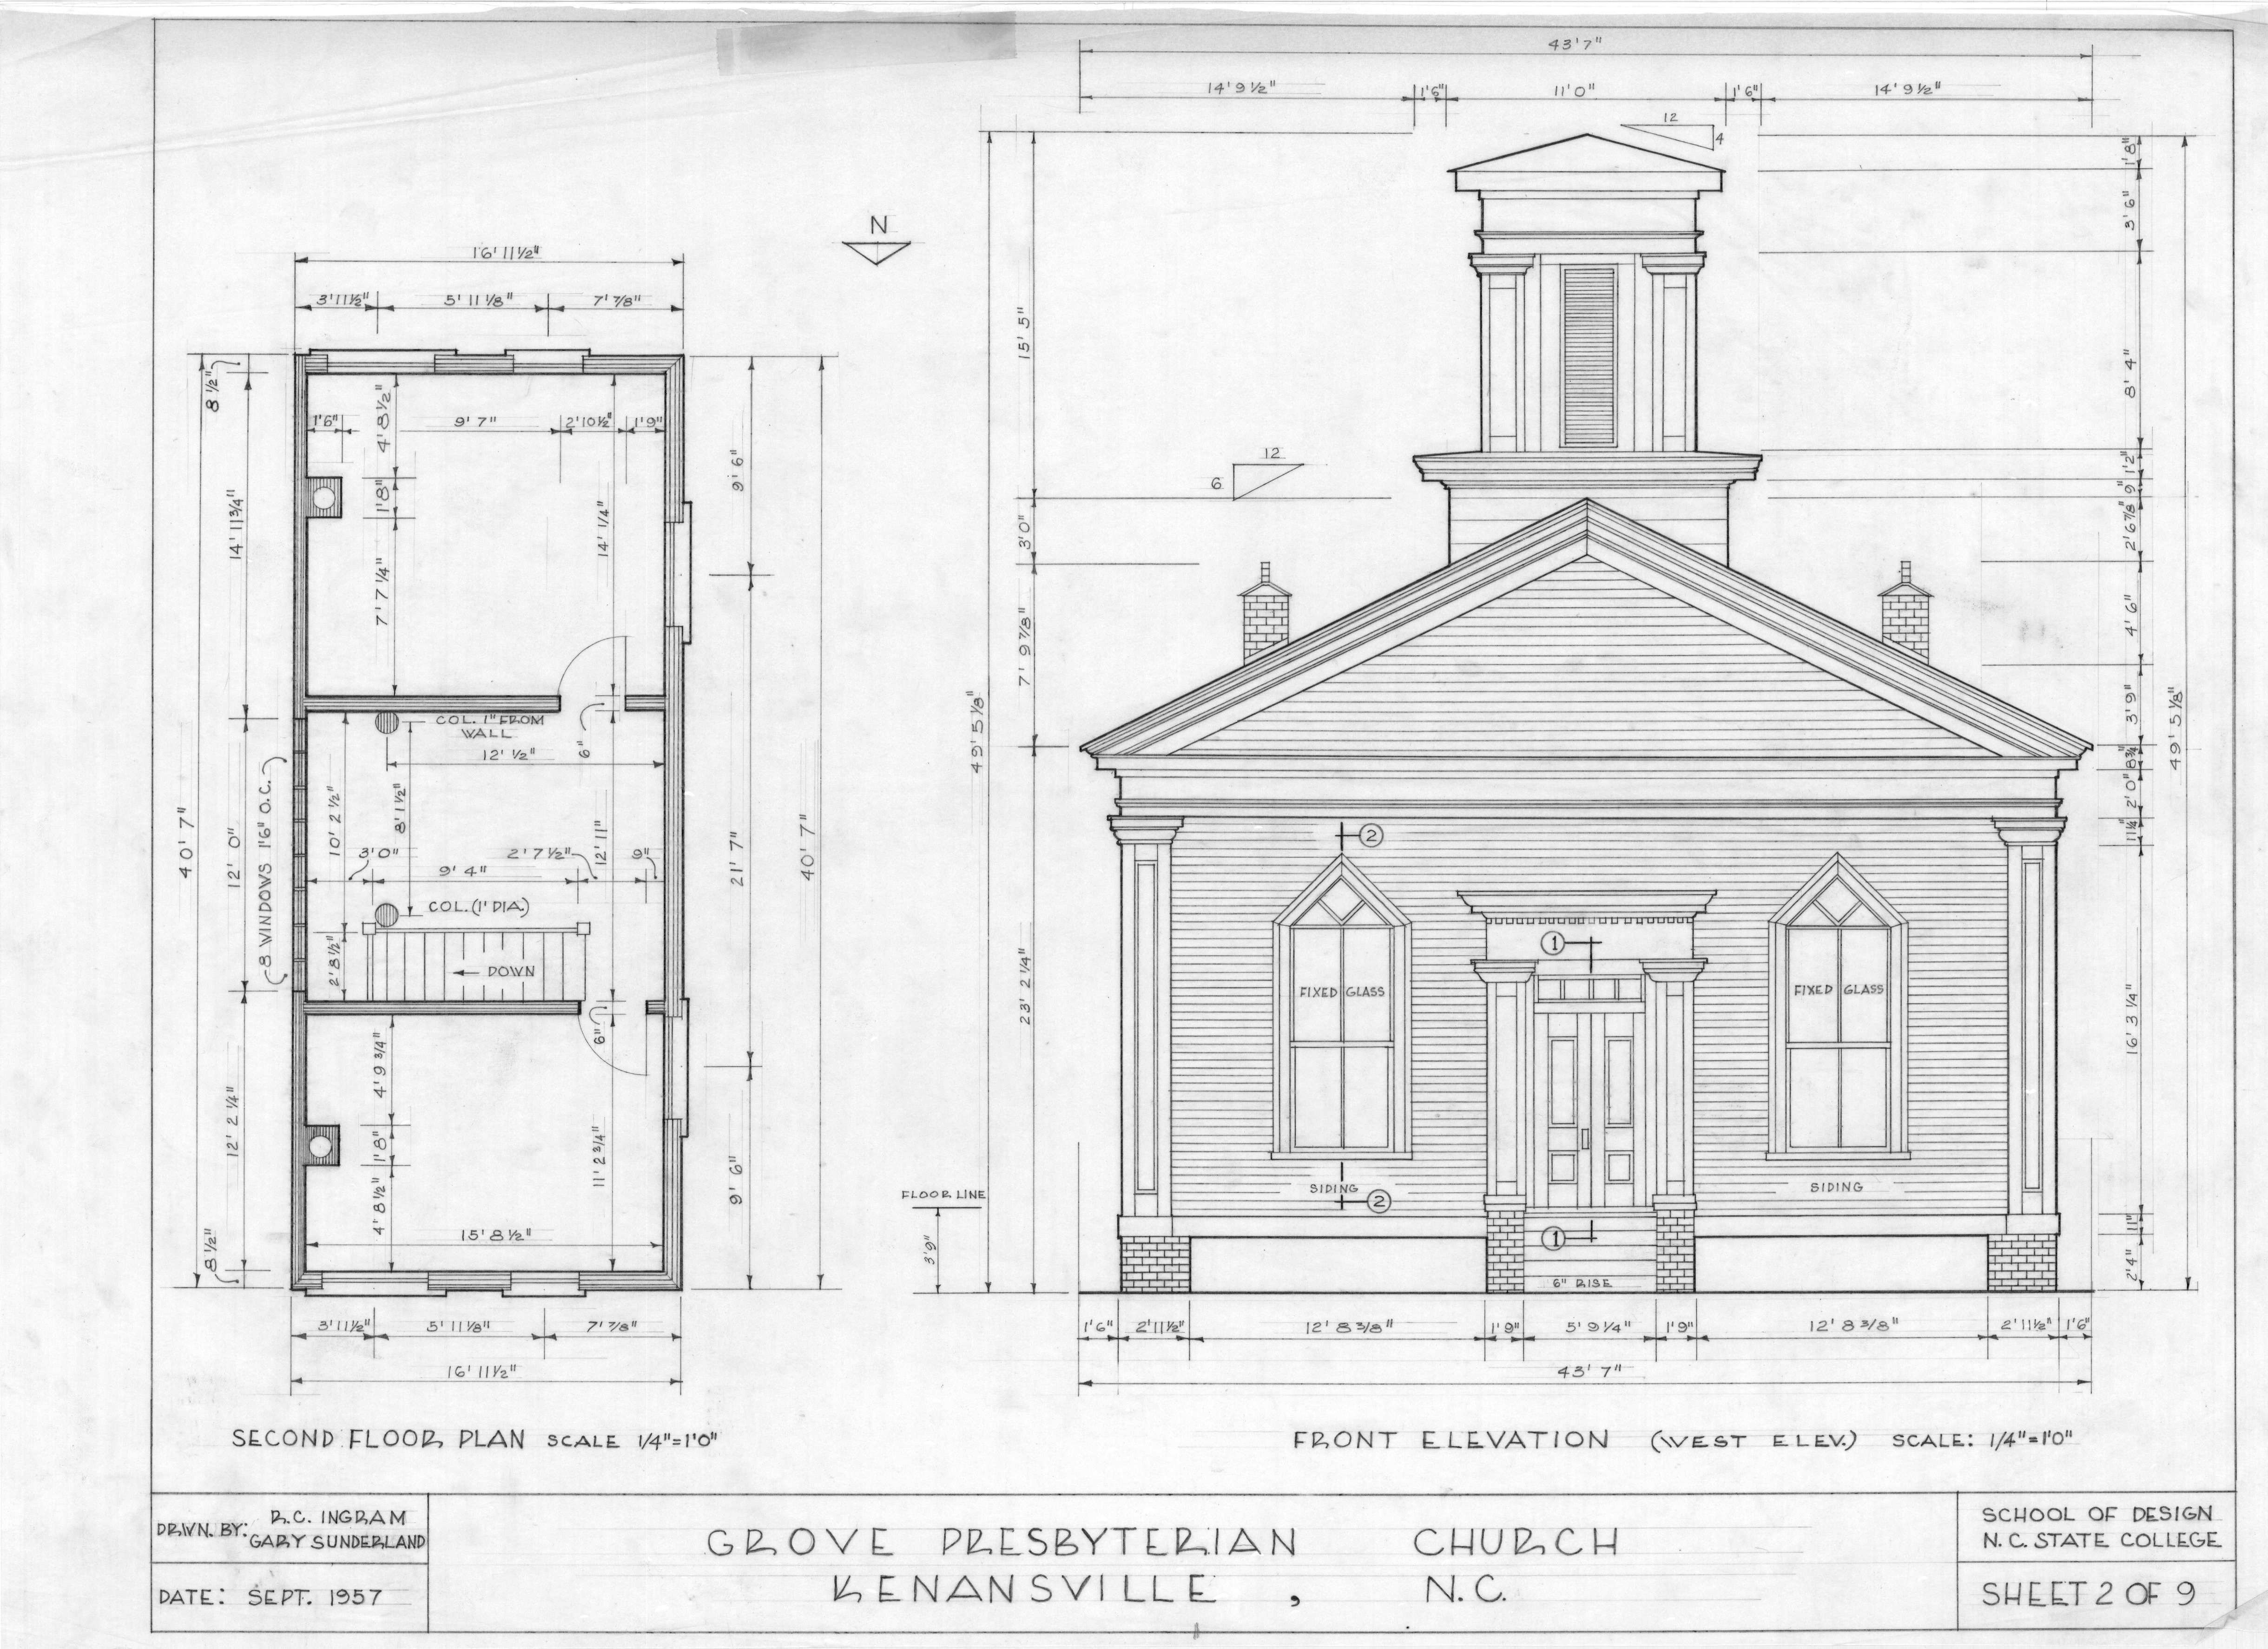 Elevation Church Plan A Visit : Second floor plan and west elevation grove presbyterian